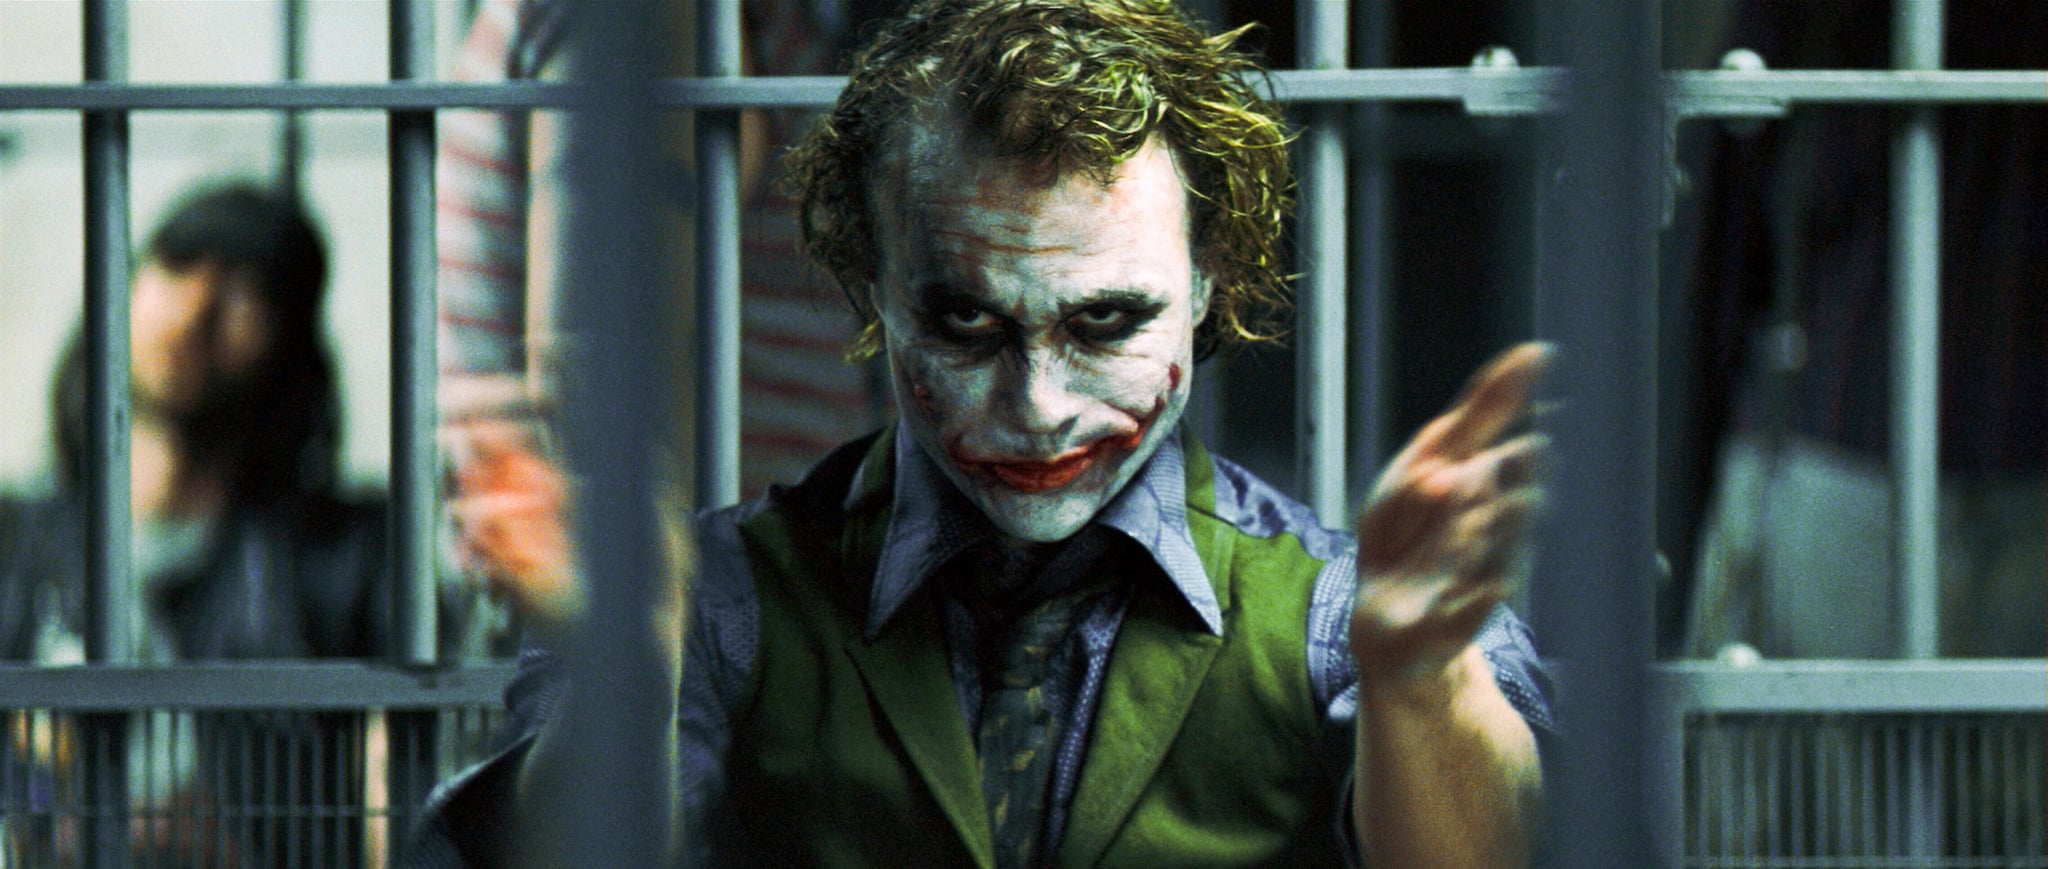 THE DARK KNIGHT, Heath Ledger as The Joker, 2008. Warner Bros./Courtesy Everett Collection